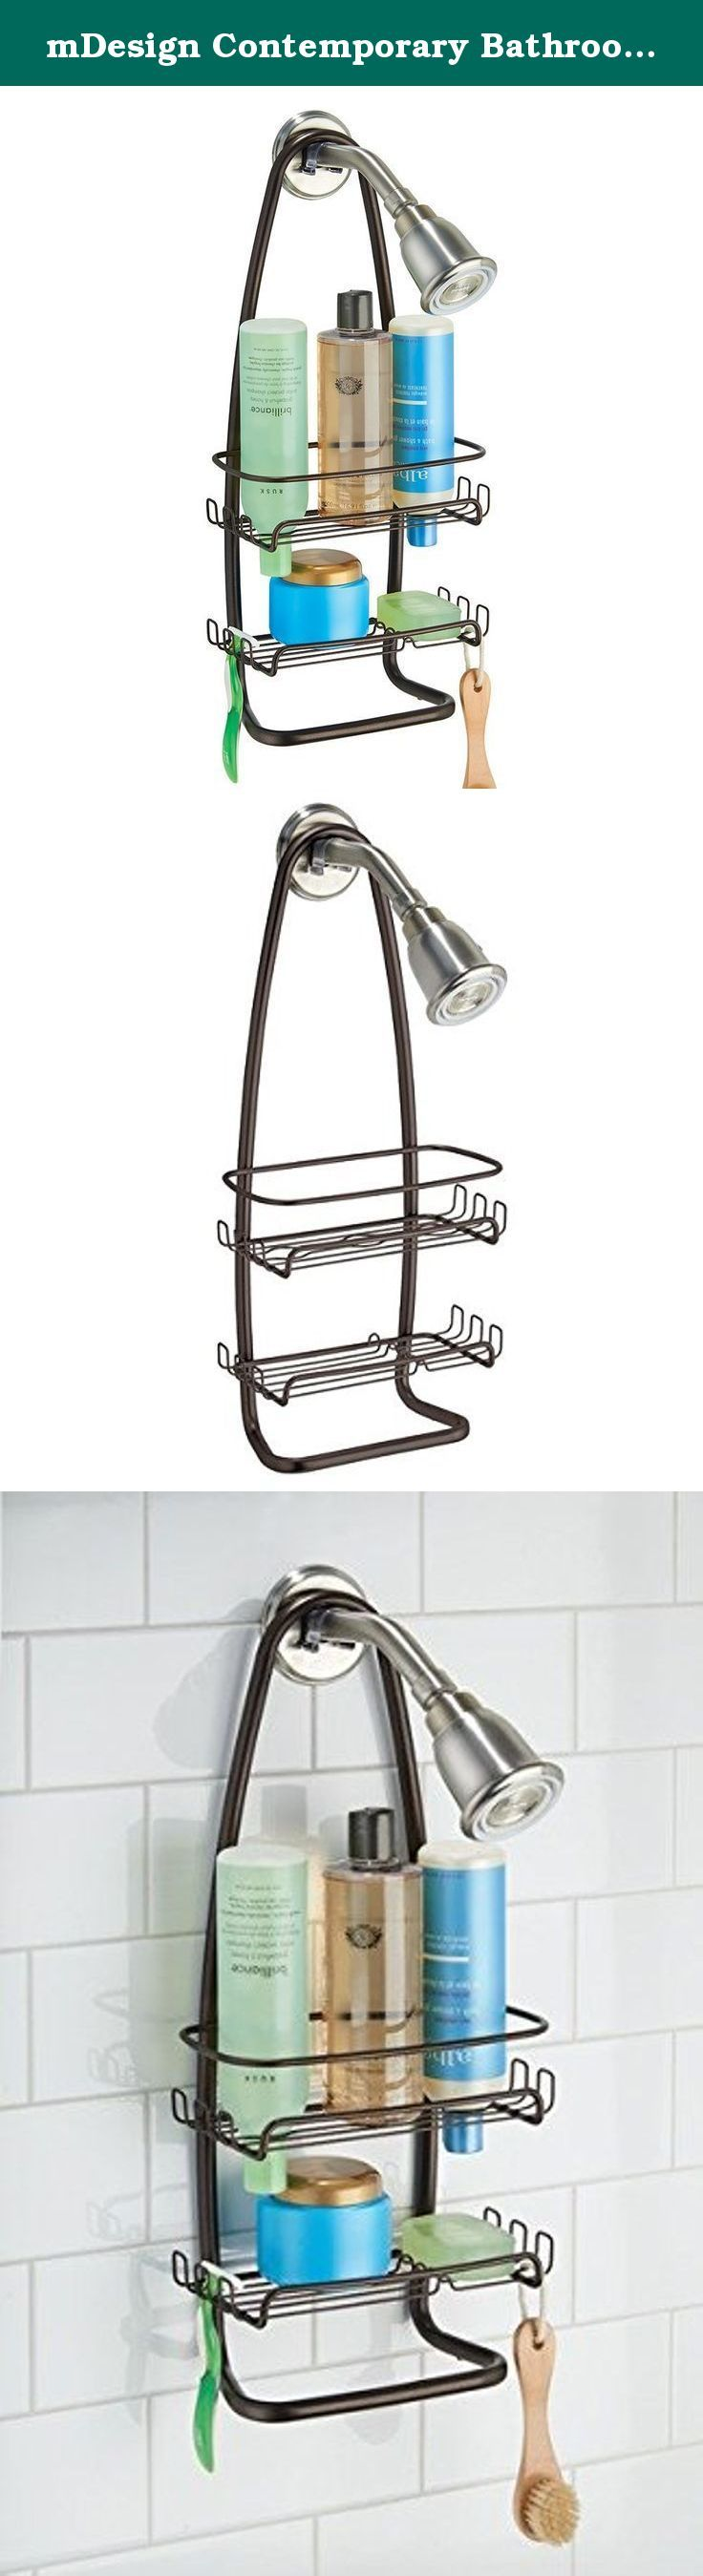 mDesign Contemporary Bathroom Shower Caddy for Shampoo, Conditioner, Soap - Bronze. The mDesign Contemporary Shower Caddy features two shelves for shampoo bottles, soaps, brushes and more. Hang loofahs and razors on 12 hooks and dry a washcloth on the towel bar. Made of steel with rustproof coating.